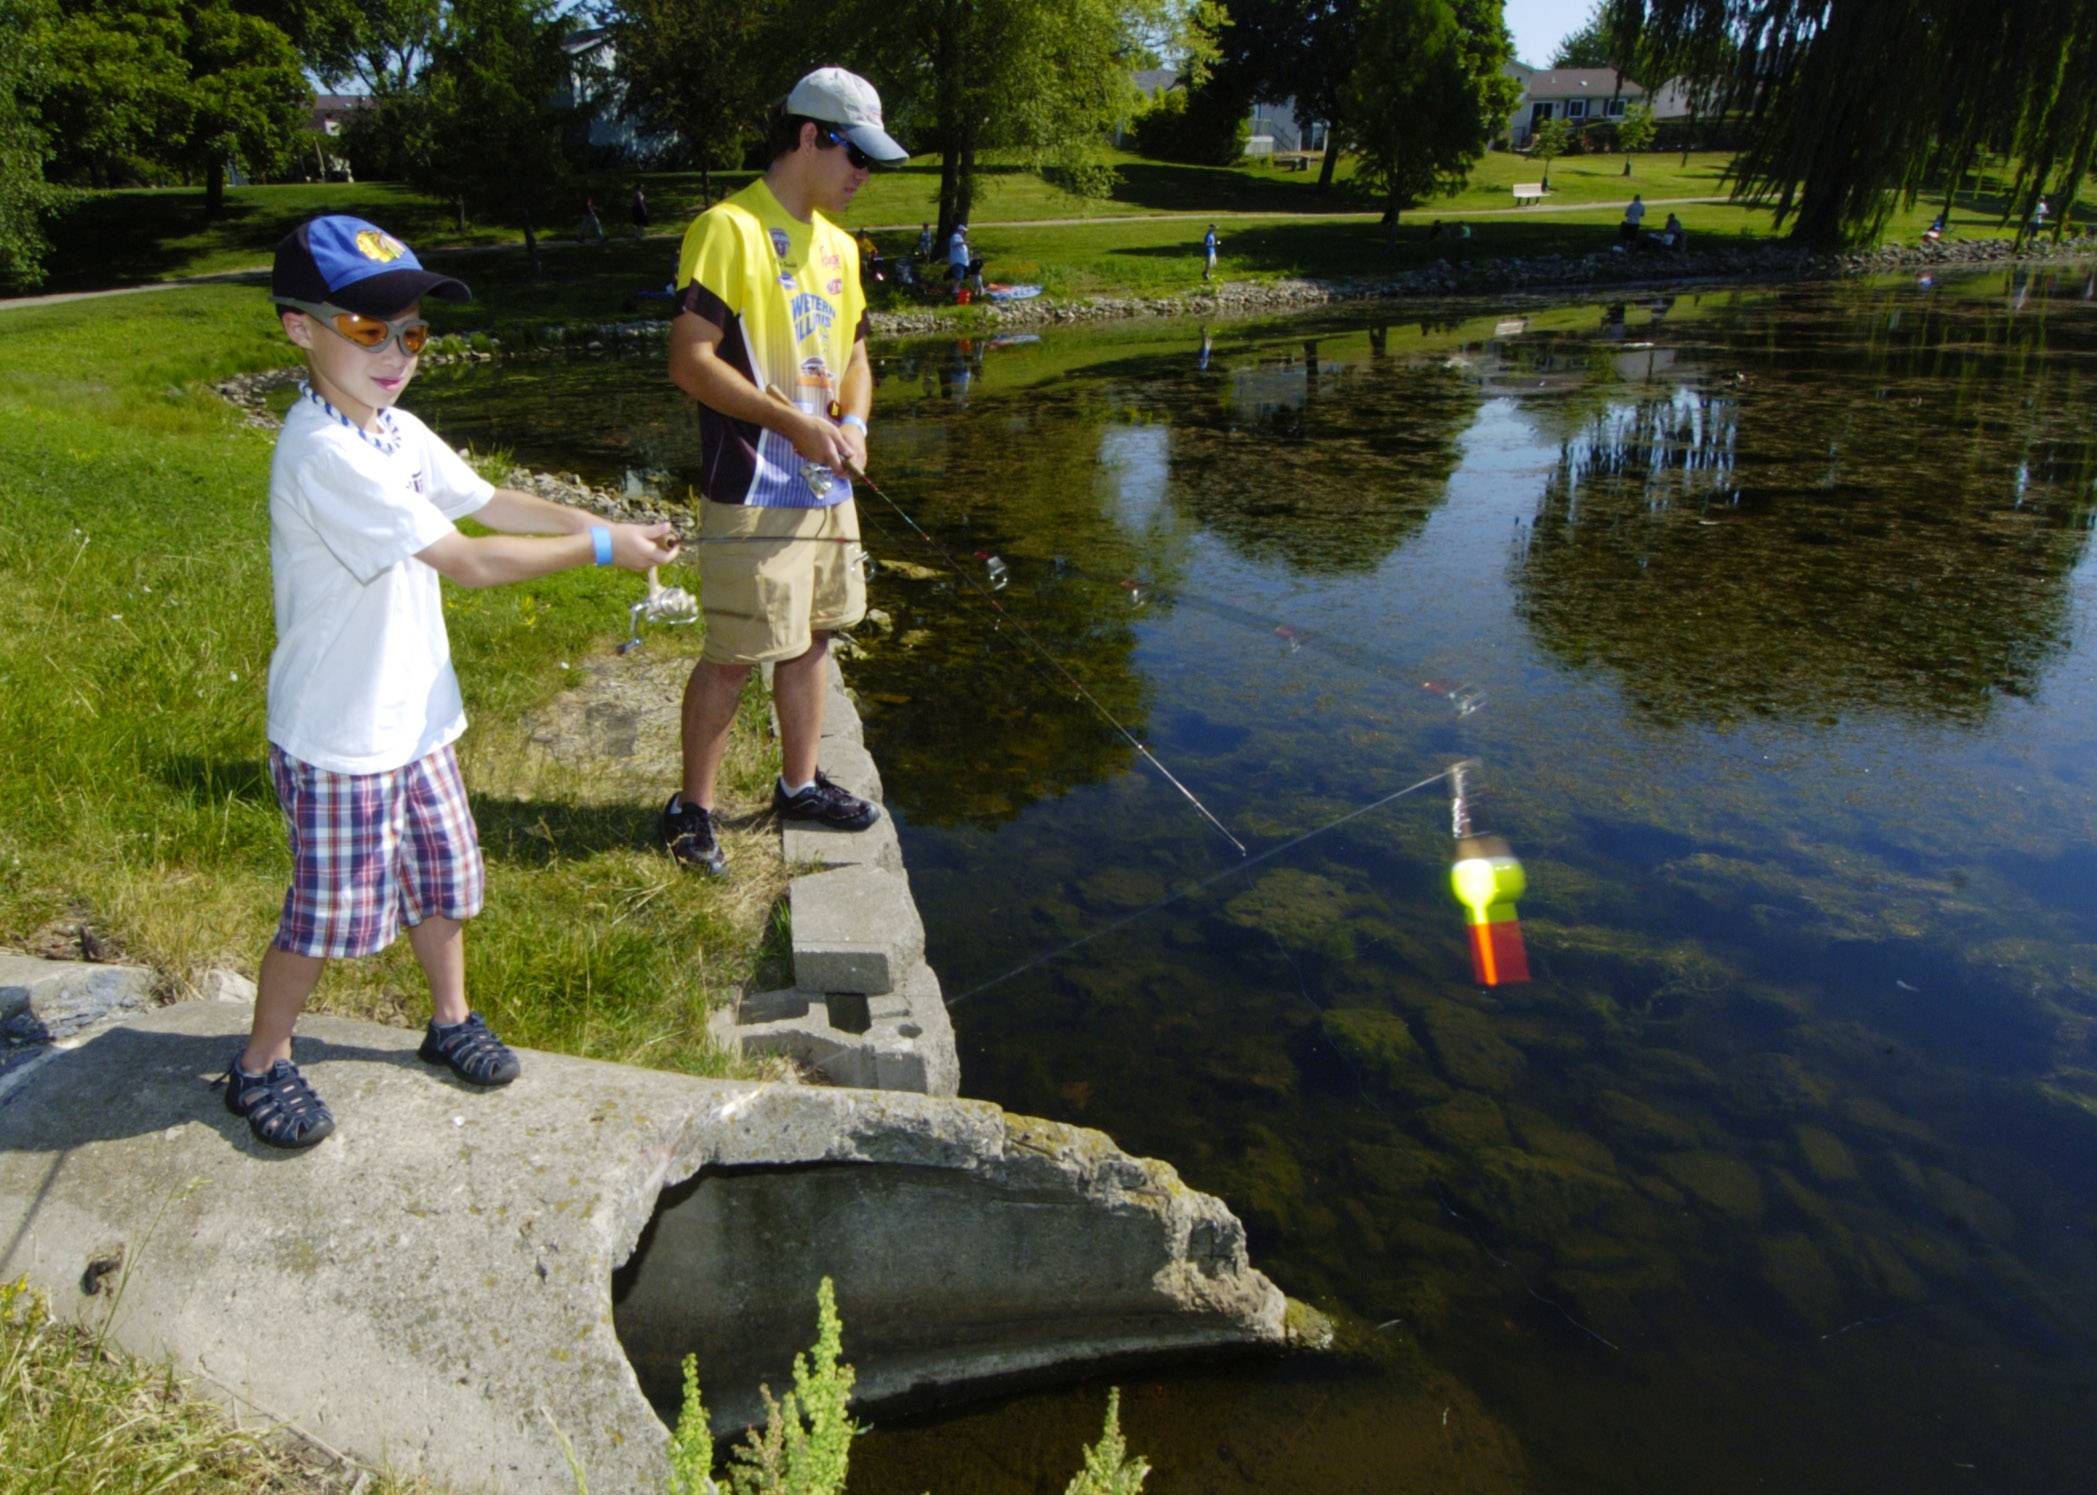 During the 2012 Community Fishing Derby at South Ridge Lake in Hoffman Estates, 7-year-old Jack Gawlik of Algonquin casts above a culvert with his cousin, Bryan Gawlik of Schaumburg.